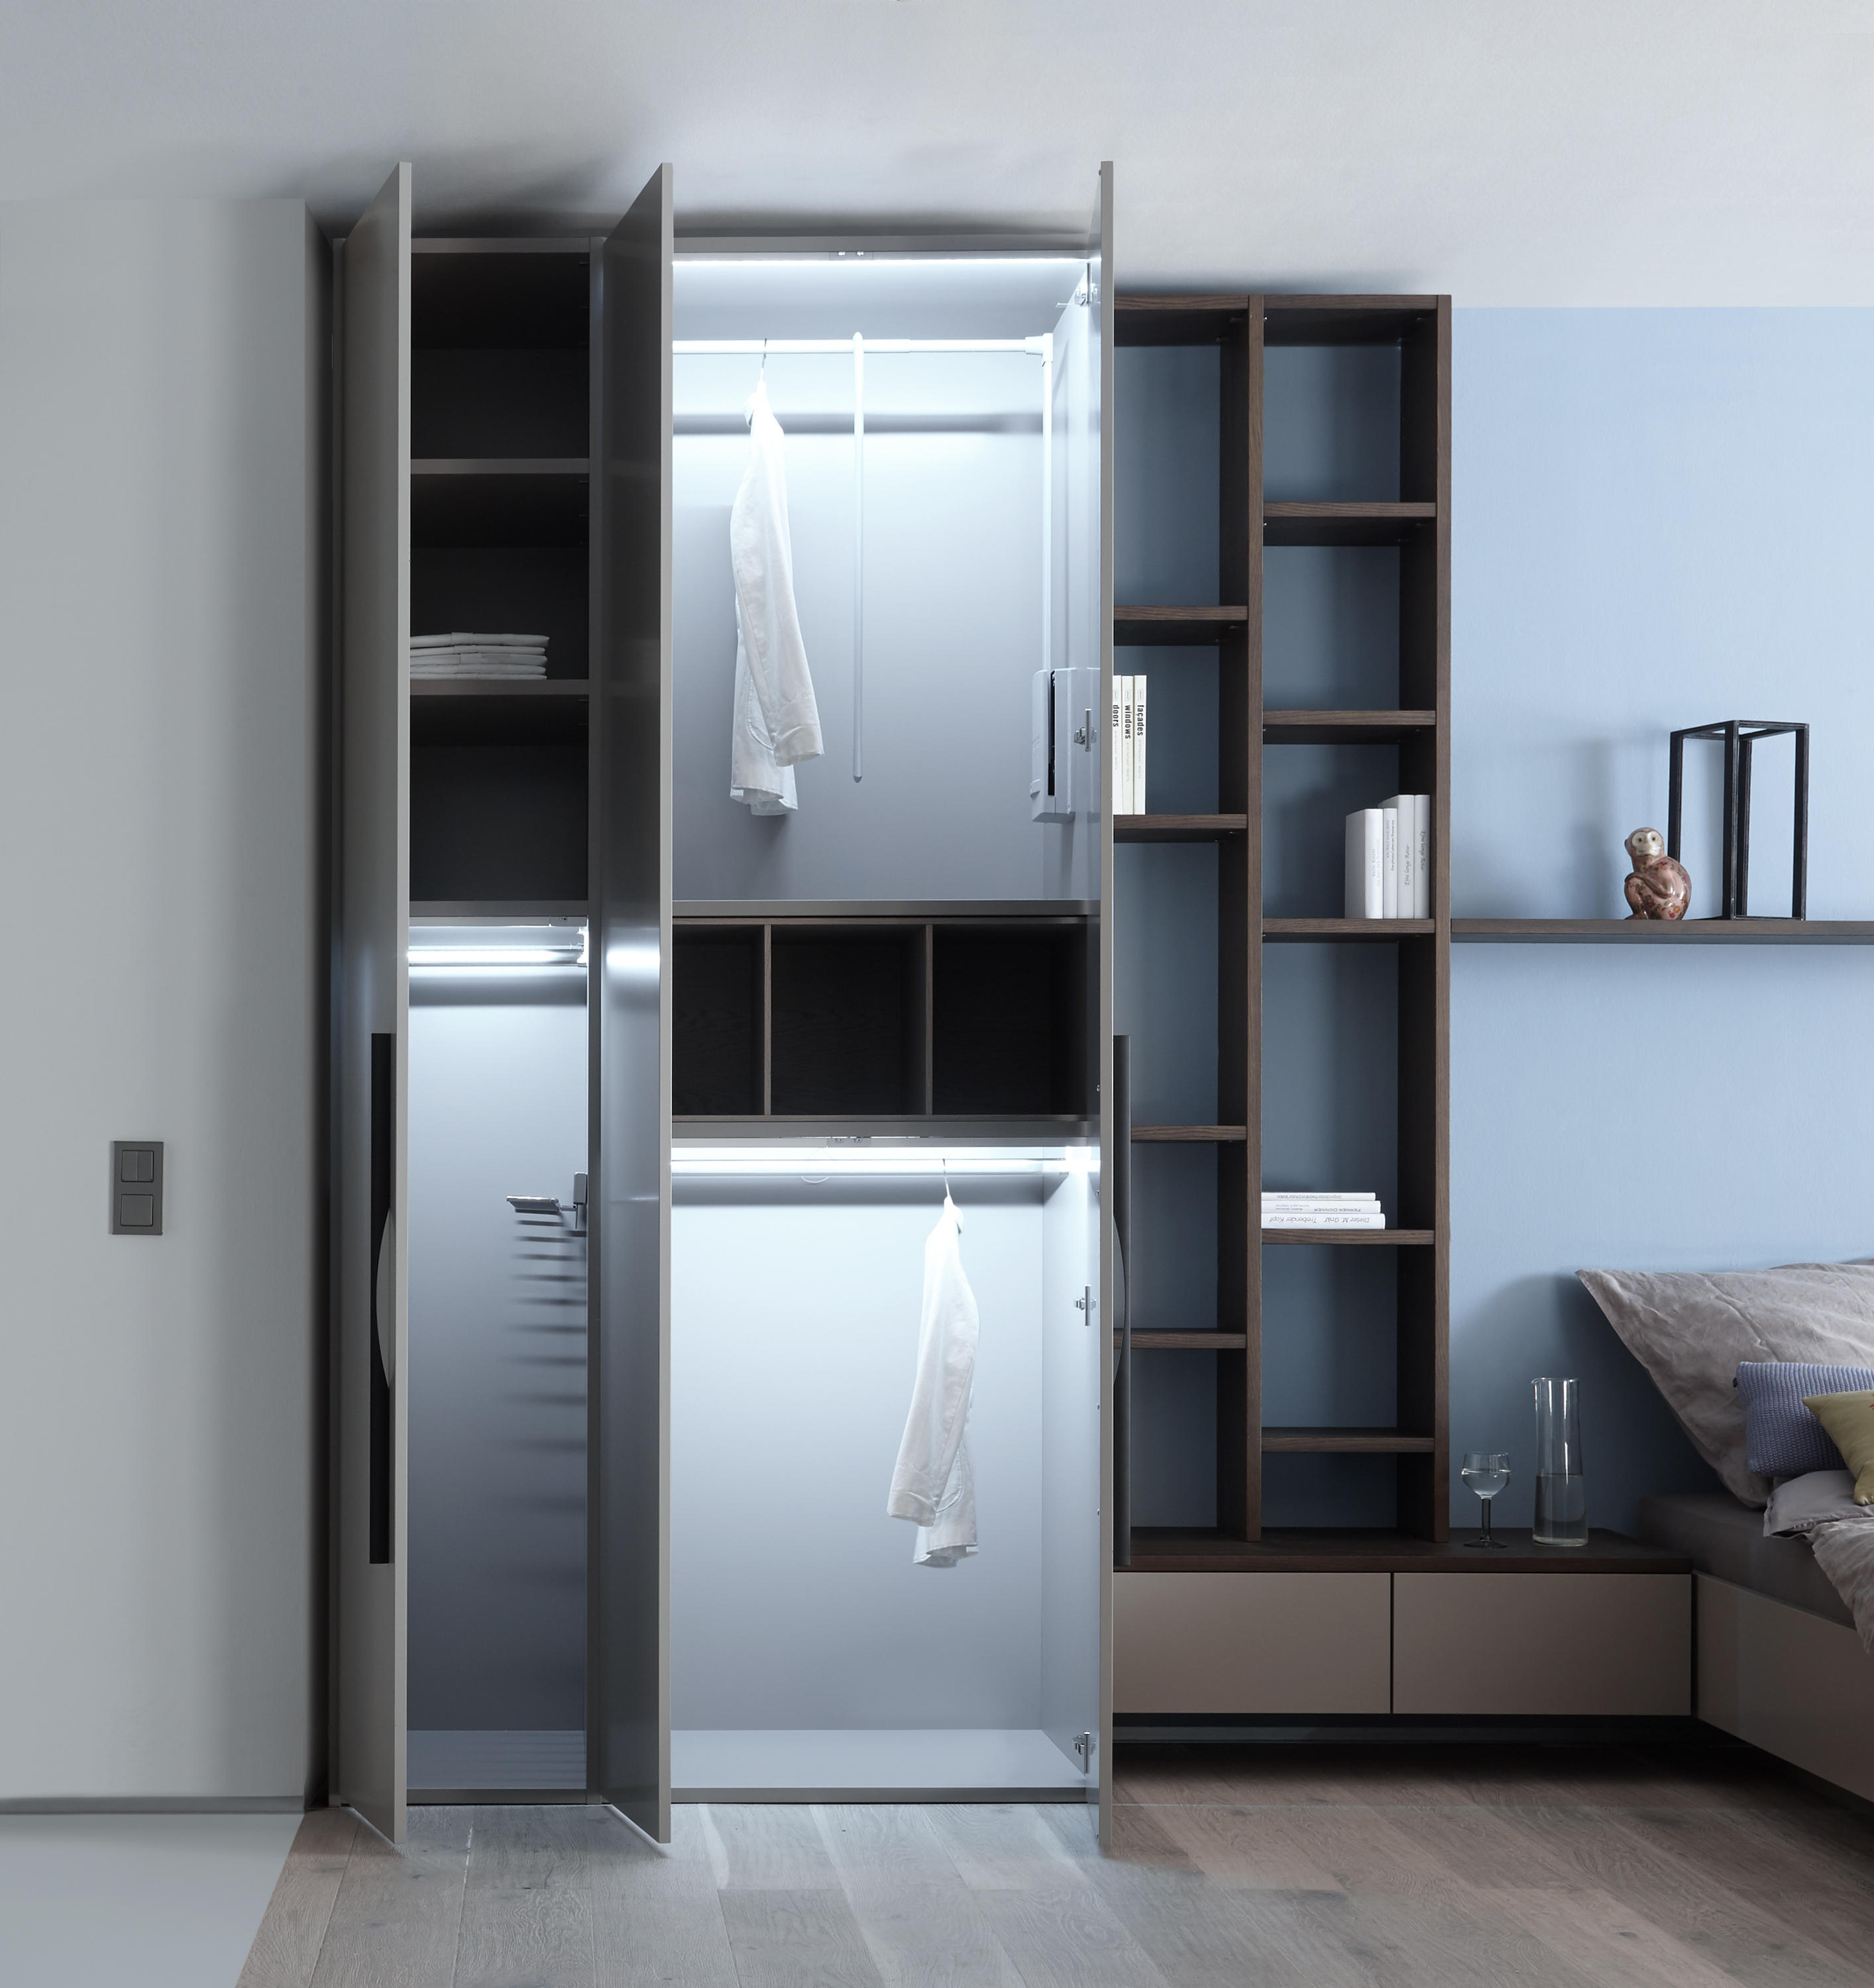 Apartment Kitchen Cabinets: APARTMENT - Cabinets From Sudbrock